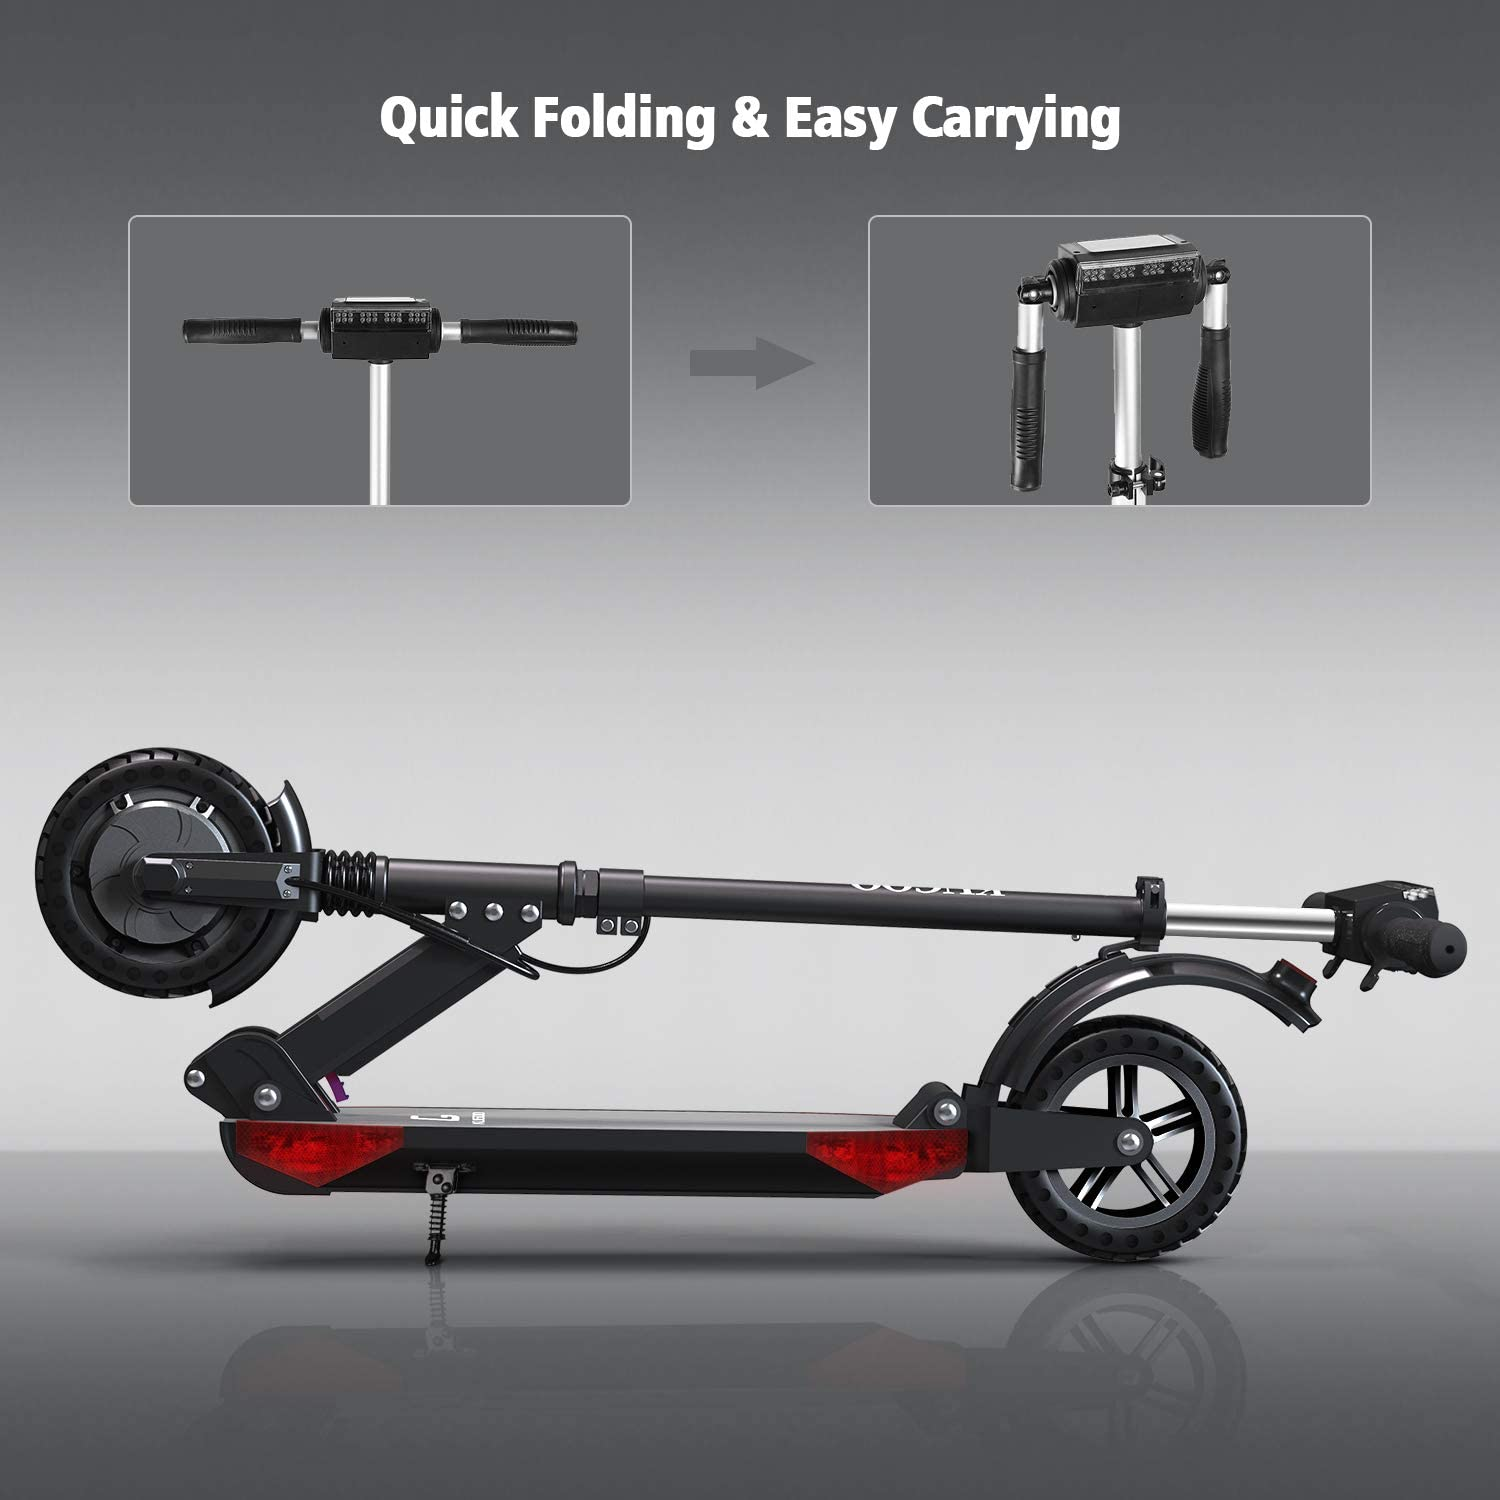 S1 Pro urbetter Folding Electric Scooter 350W Motor LCD Display Screen 3 Speed Modes 8 Inch Honeycomb Explosion-Proof Tire 30km Long Range Electric Kick Scooter with LED Light and Bag